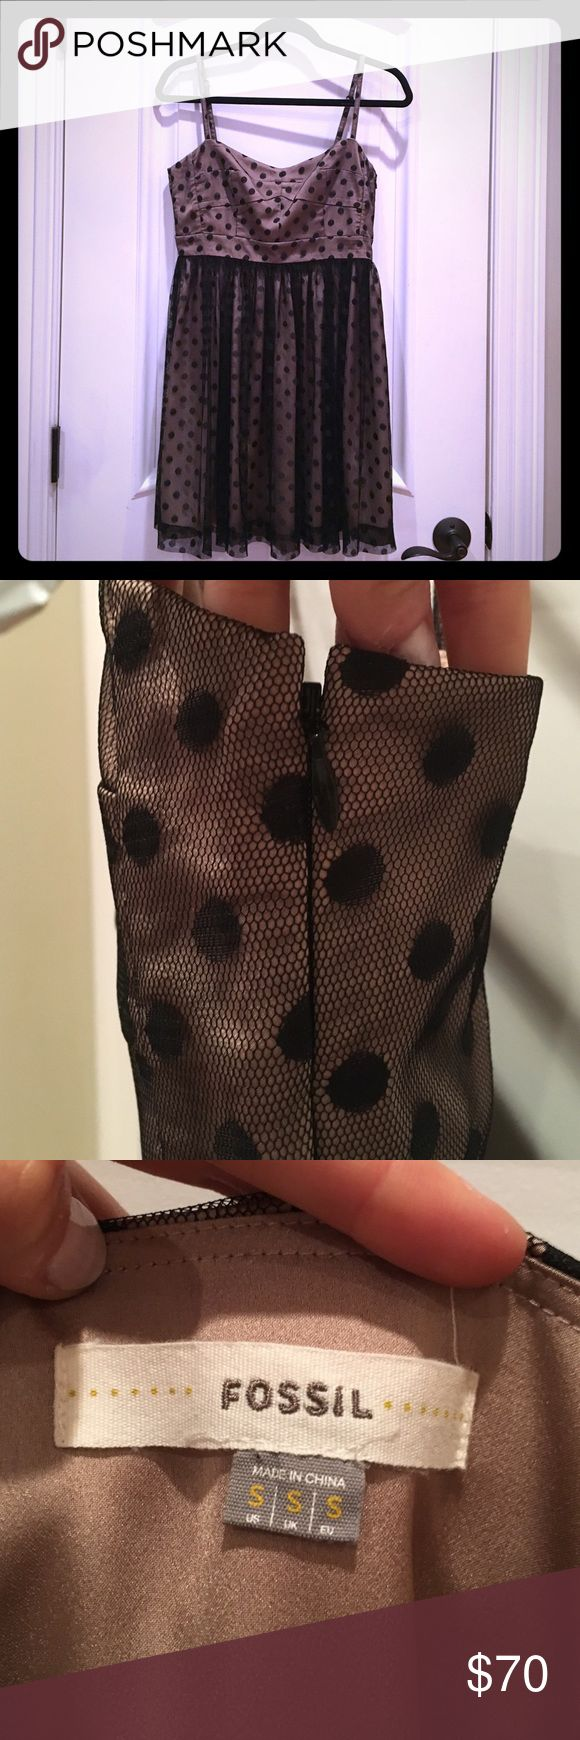 Fossil cocktail dress w/ black polka dot mesh Beautiful classy cocktail dress! Side zipped is very discreet. Adjustable straps. Worn once. In perfect condition! Fossil Dresses Mini